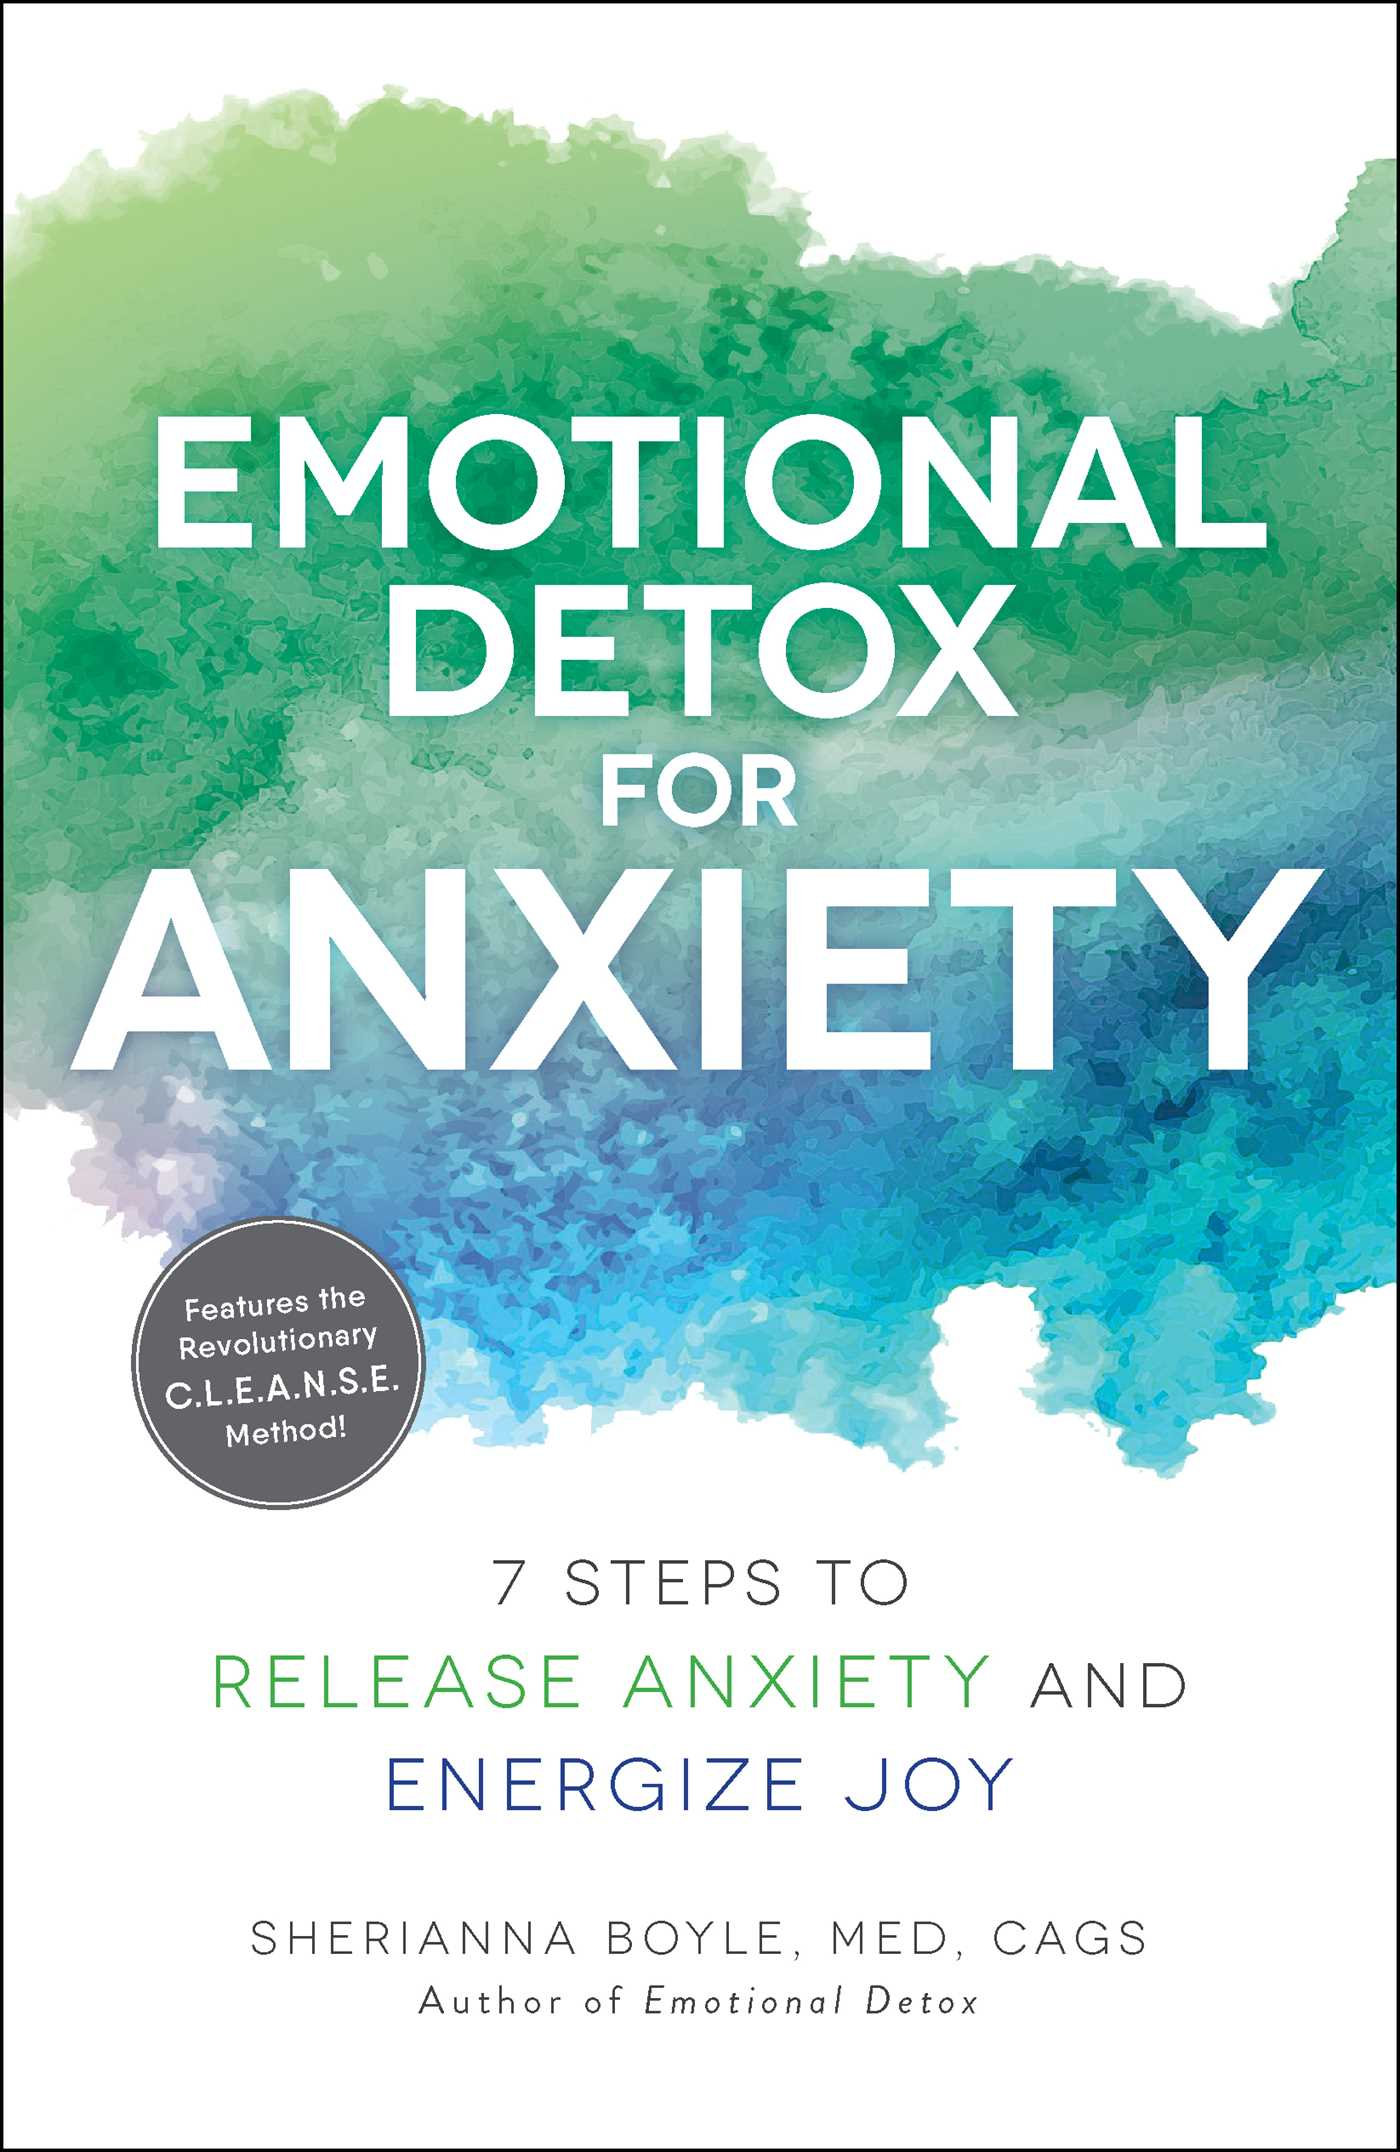 [PDF] [EPUB] Emotional Detox for Anxiety: 7 Steps to Release Anxiety and Energize Joy Download by Sherianna Boyle